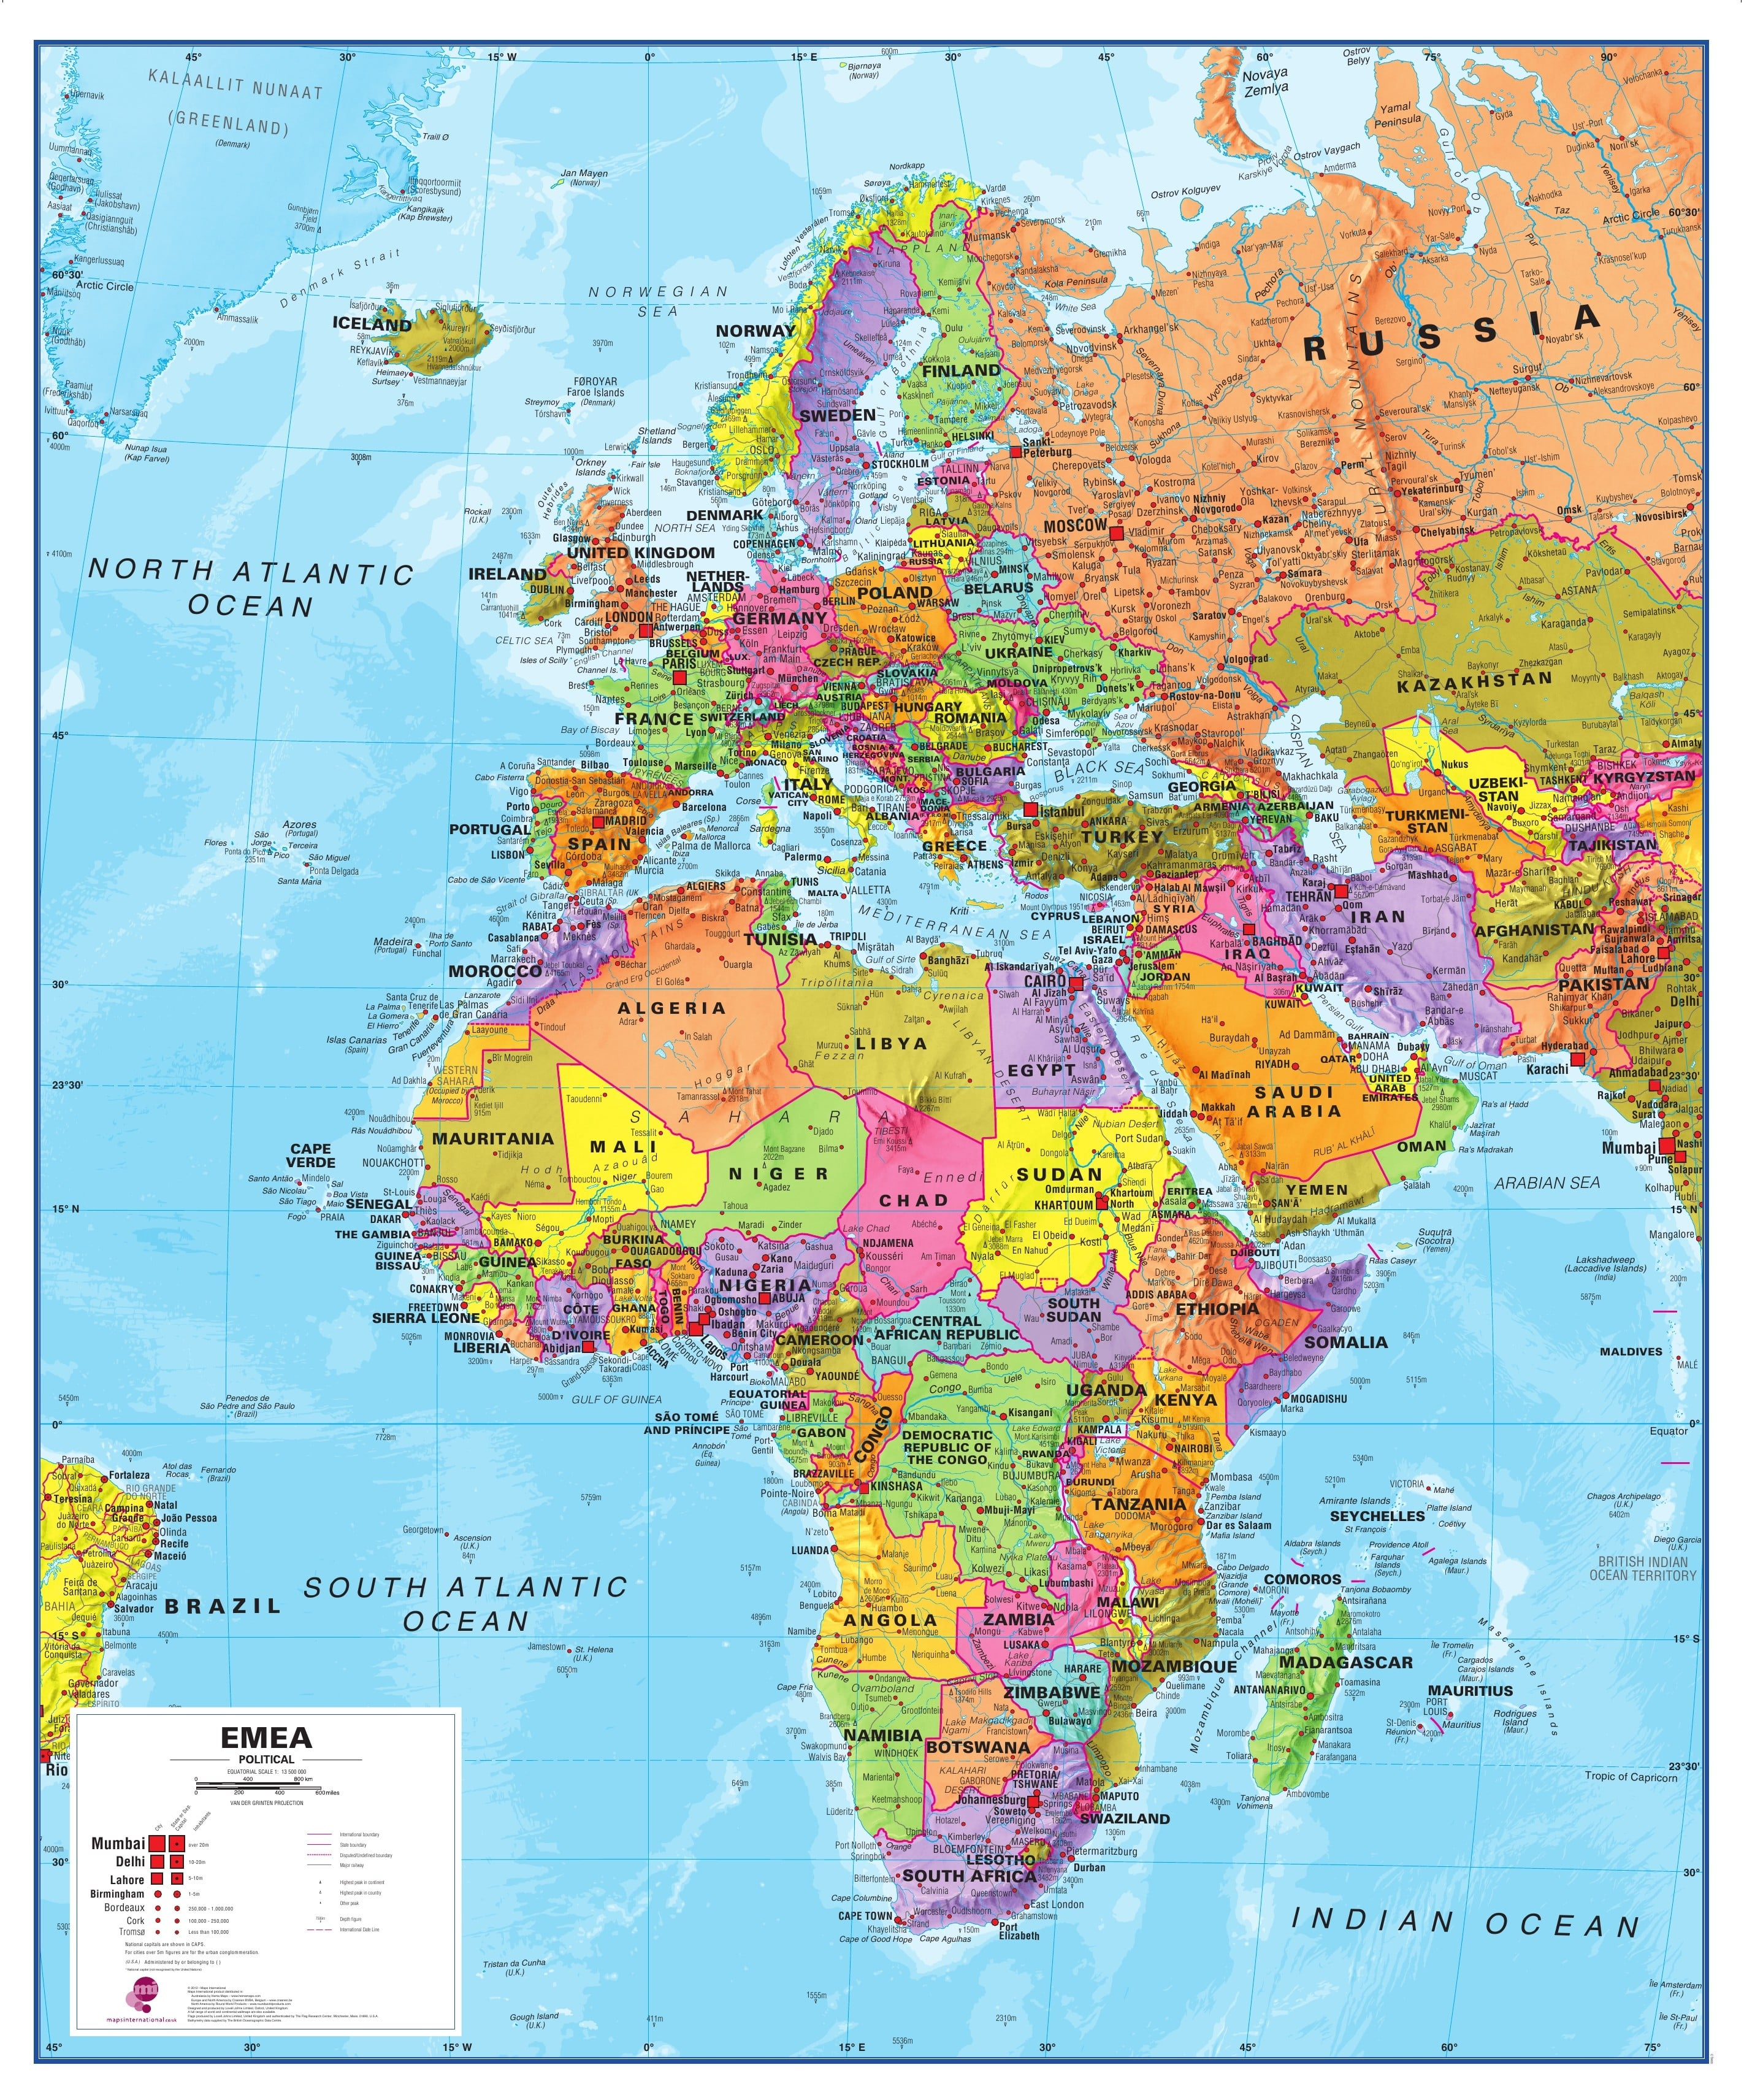 Emea europe africa middle east map europe europe wall maps gumiabroncs Choice Image